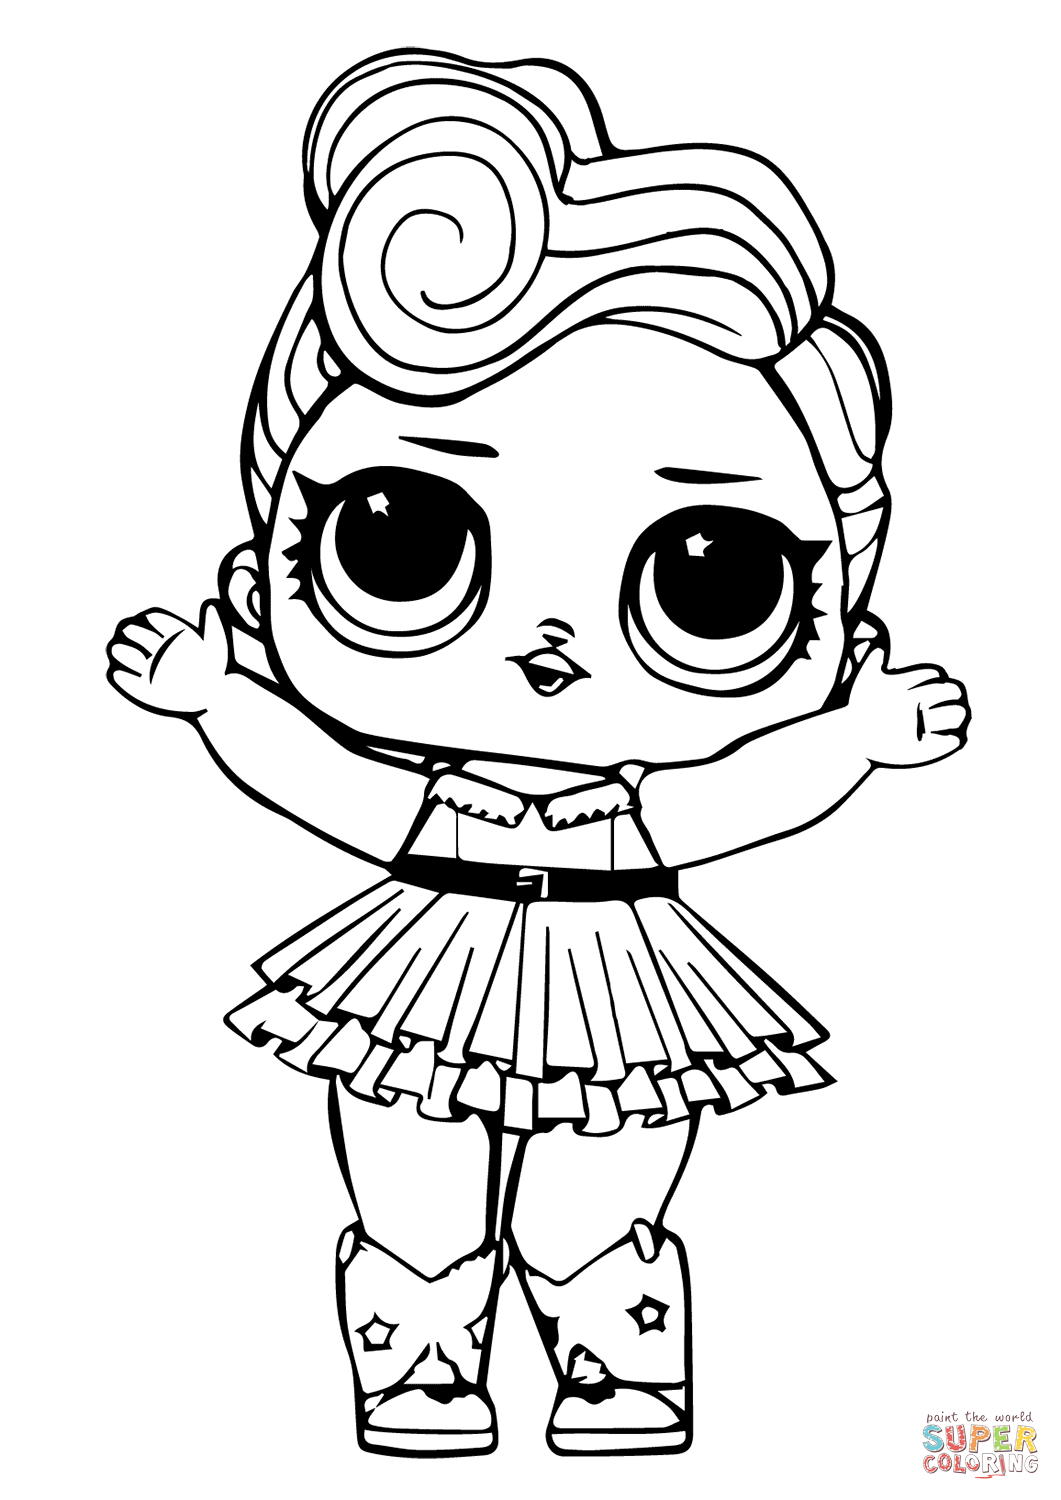 coloring pages dolls - photo#34